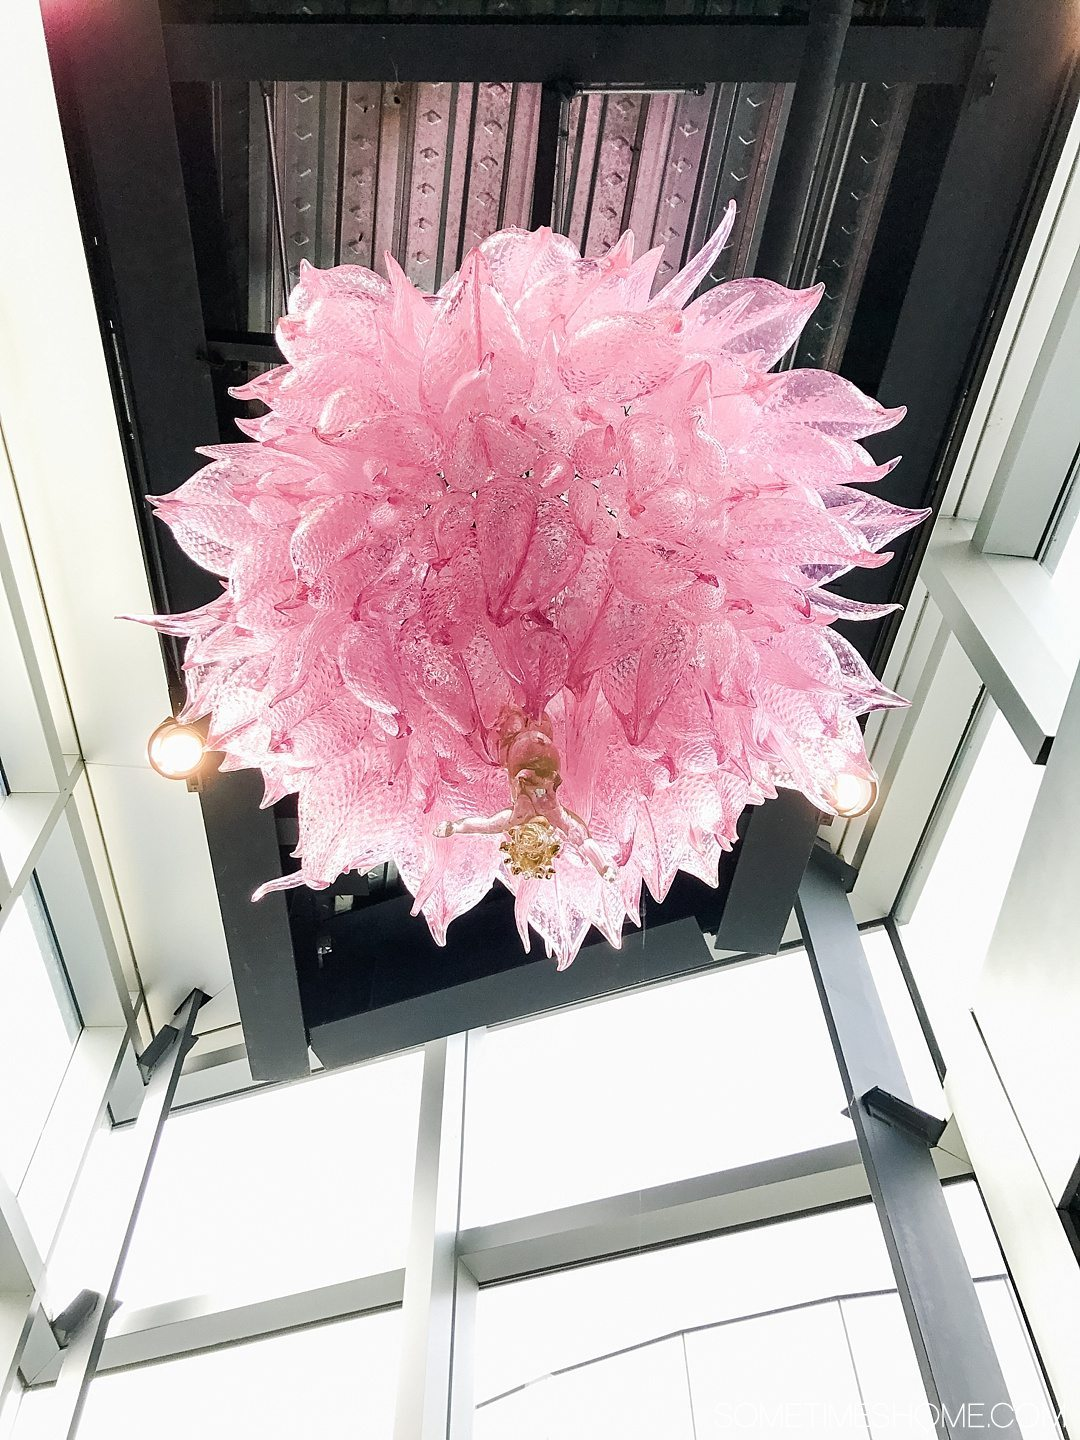 Corning Museum of Glass gift shop, hours, exhibits, photos and more on Sometimes Home travel blog. Also links to an article of what to do in Corning, New York in the Finger Lakes region. Picture of a hanging pink Chihuly glass sculpture.